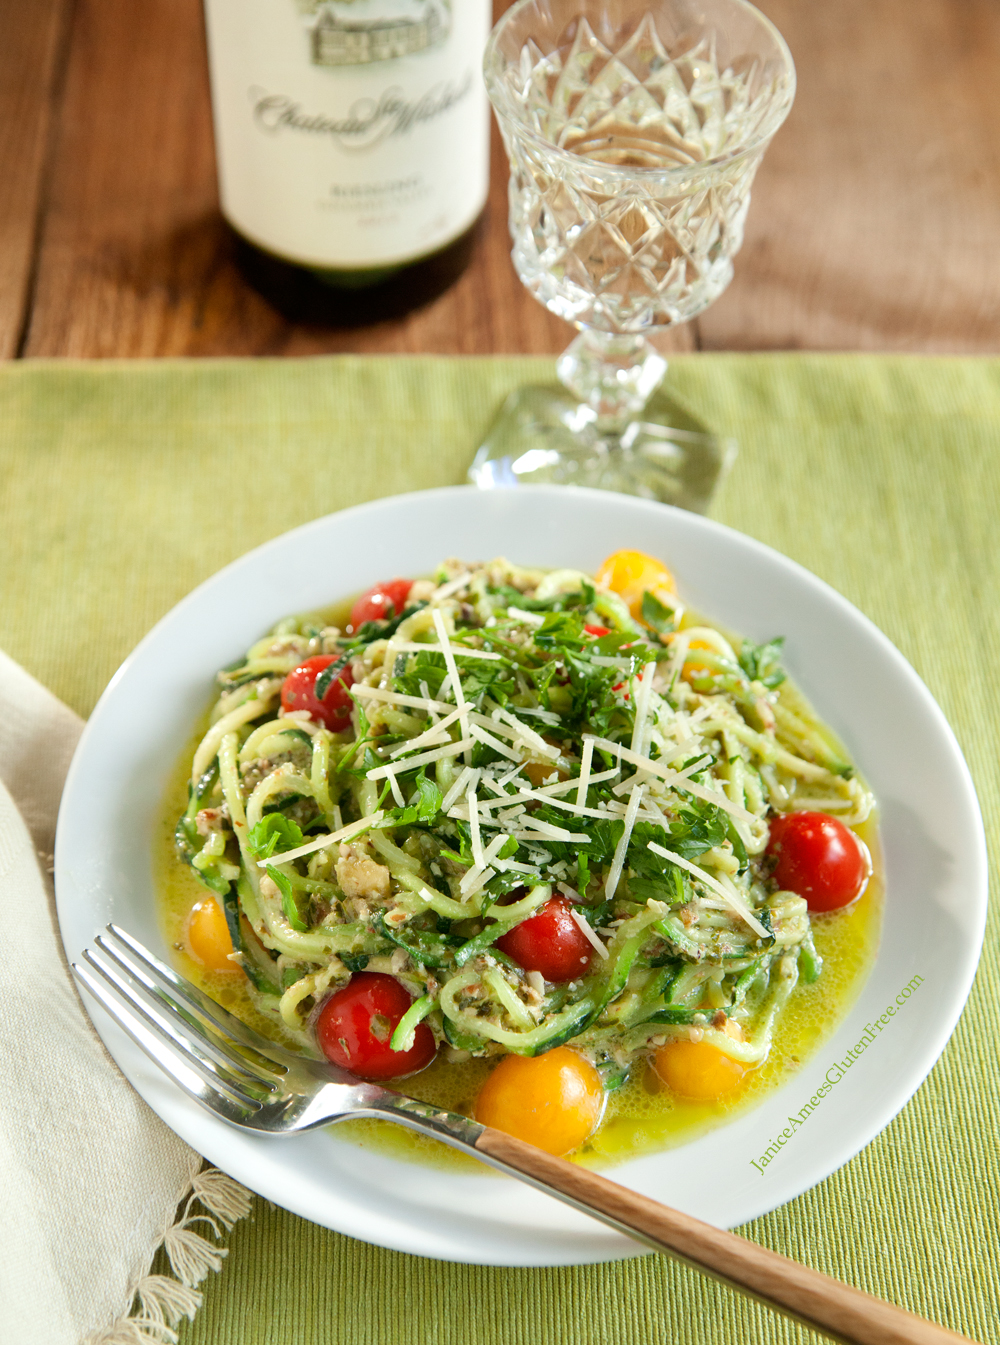 Amazing Low-Carb, Gluten-Free Pesto Pasta! So easy and delicious!